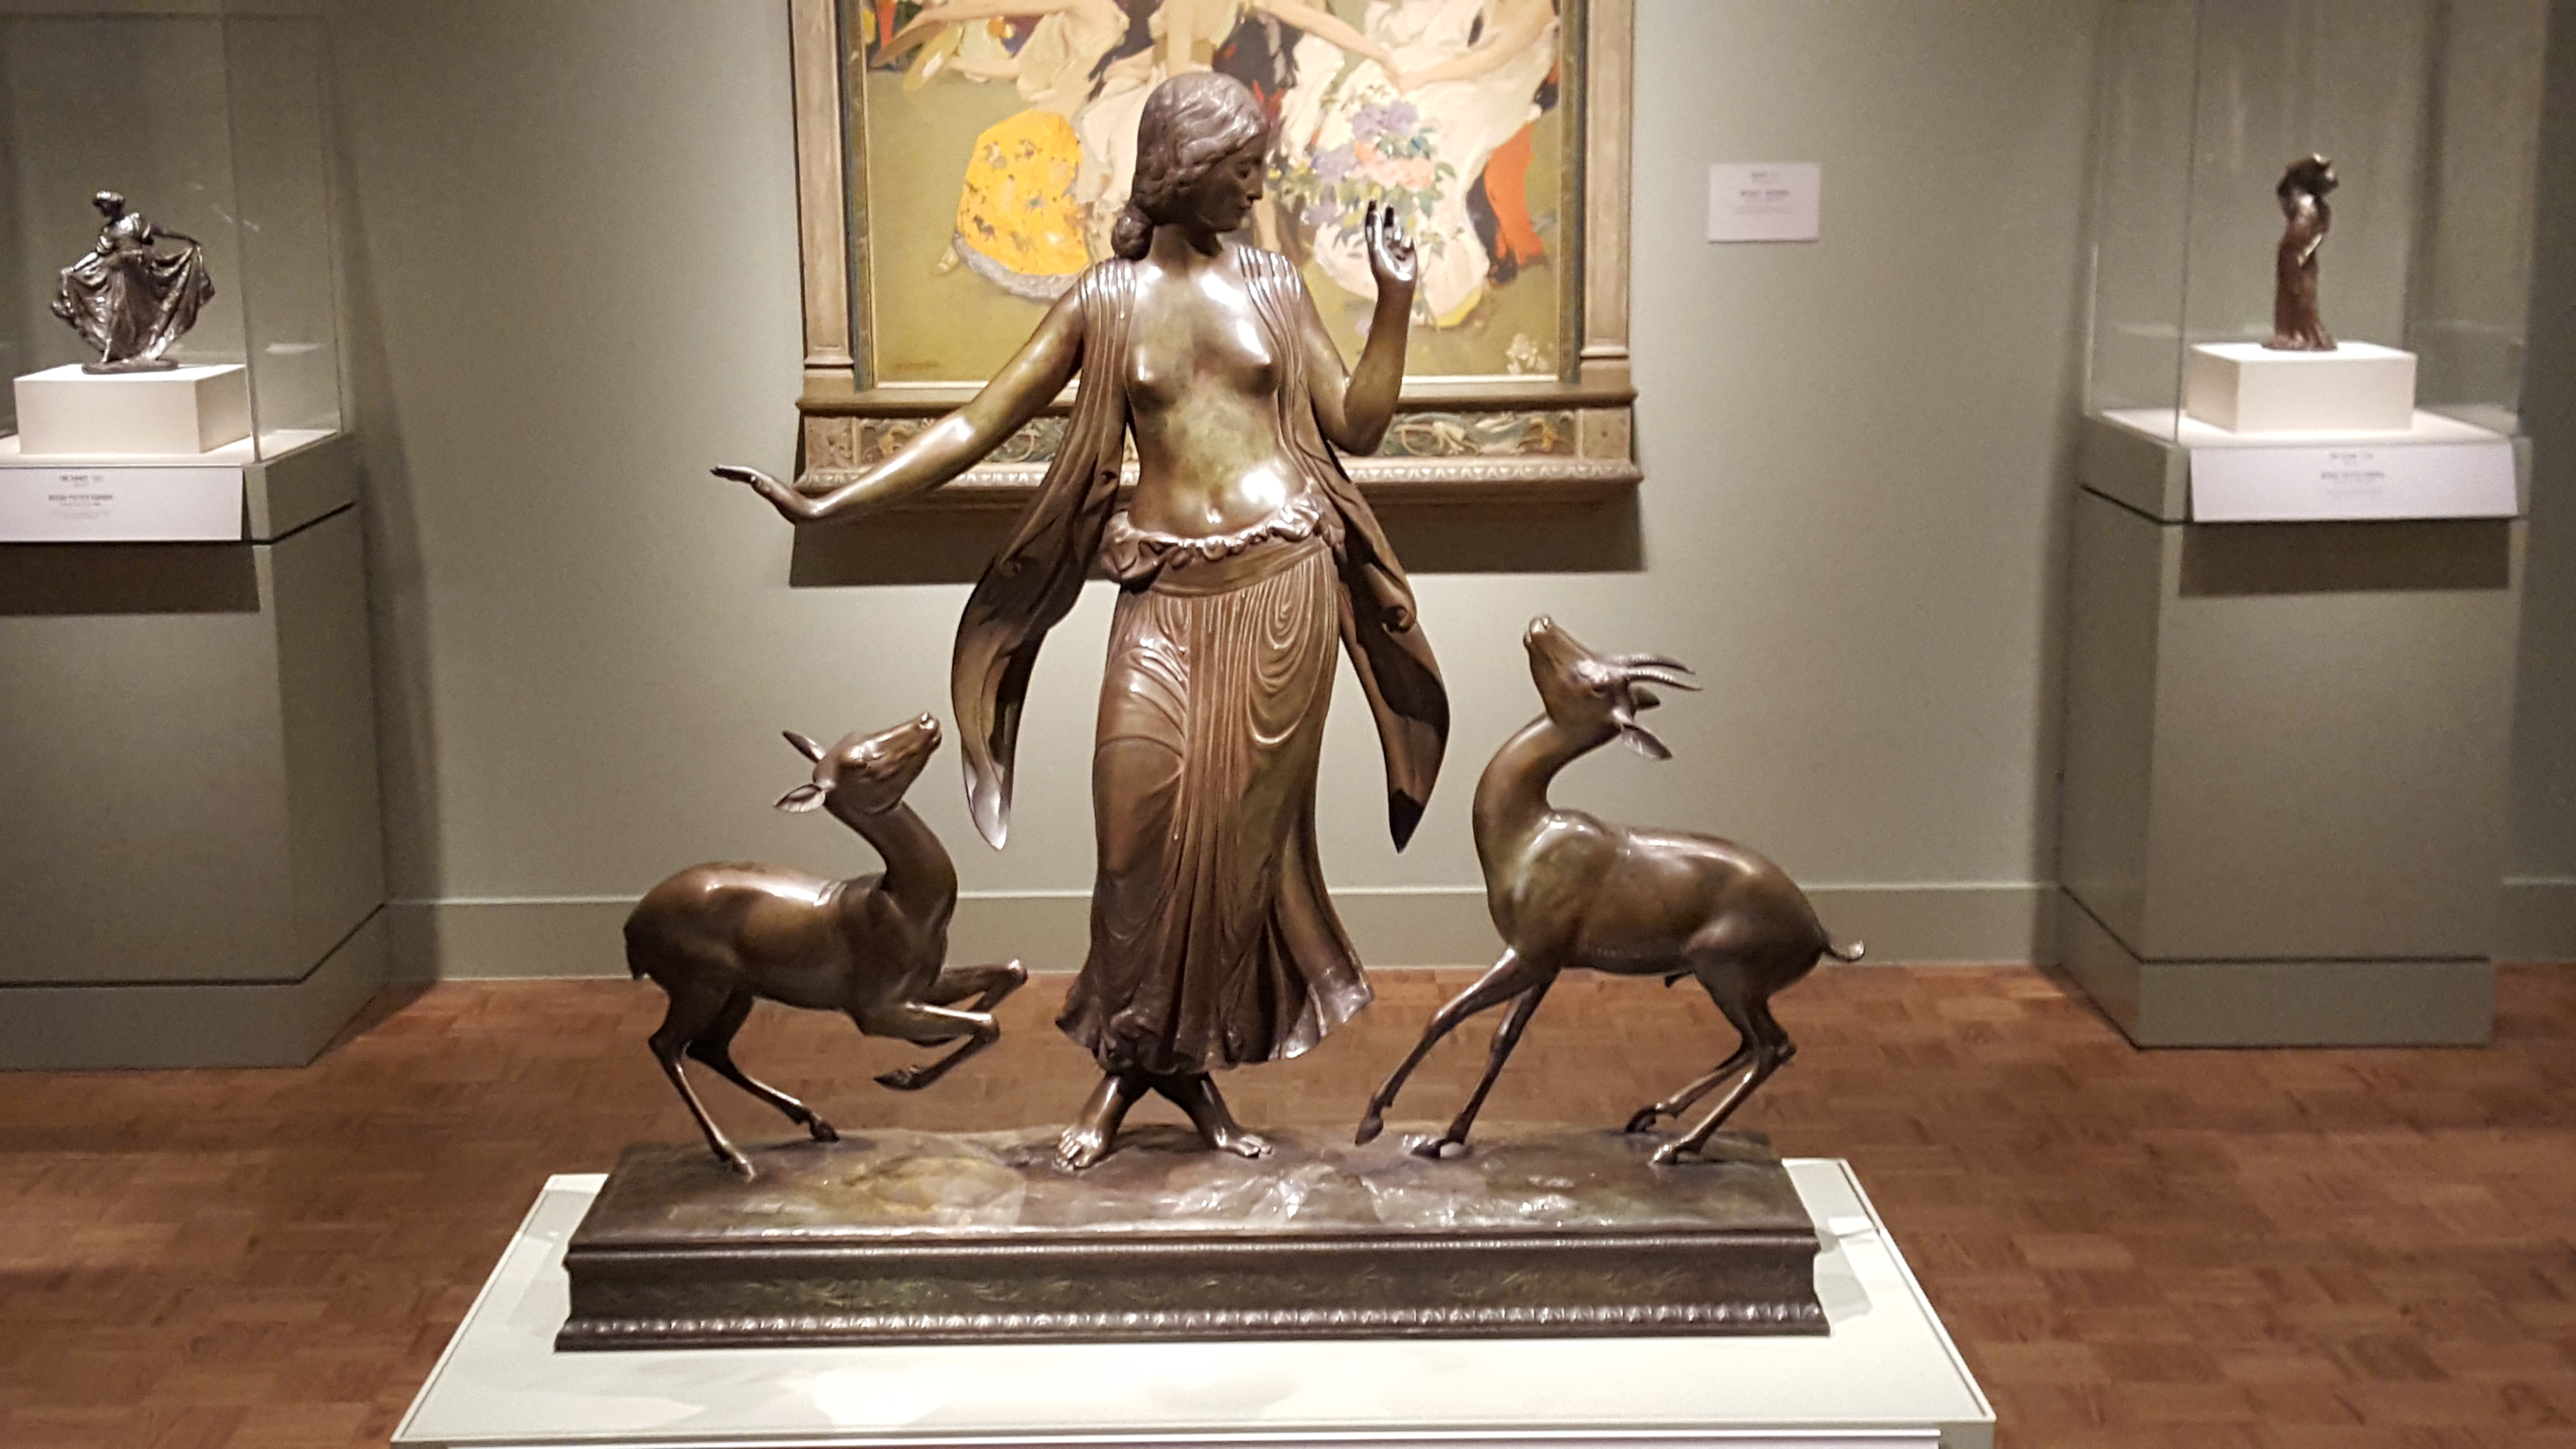 Statue of woman dancing with animals.